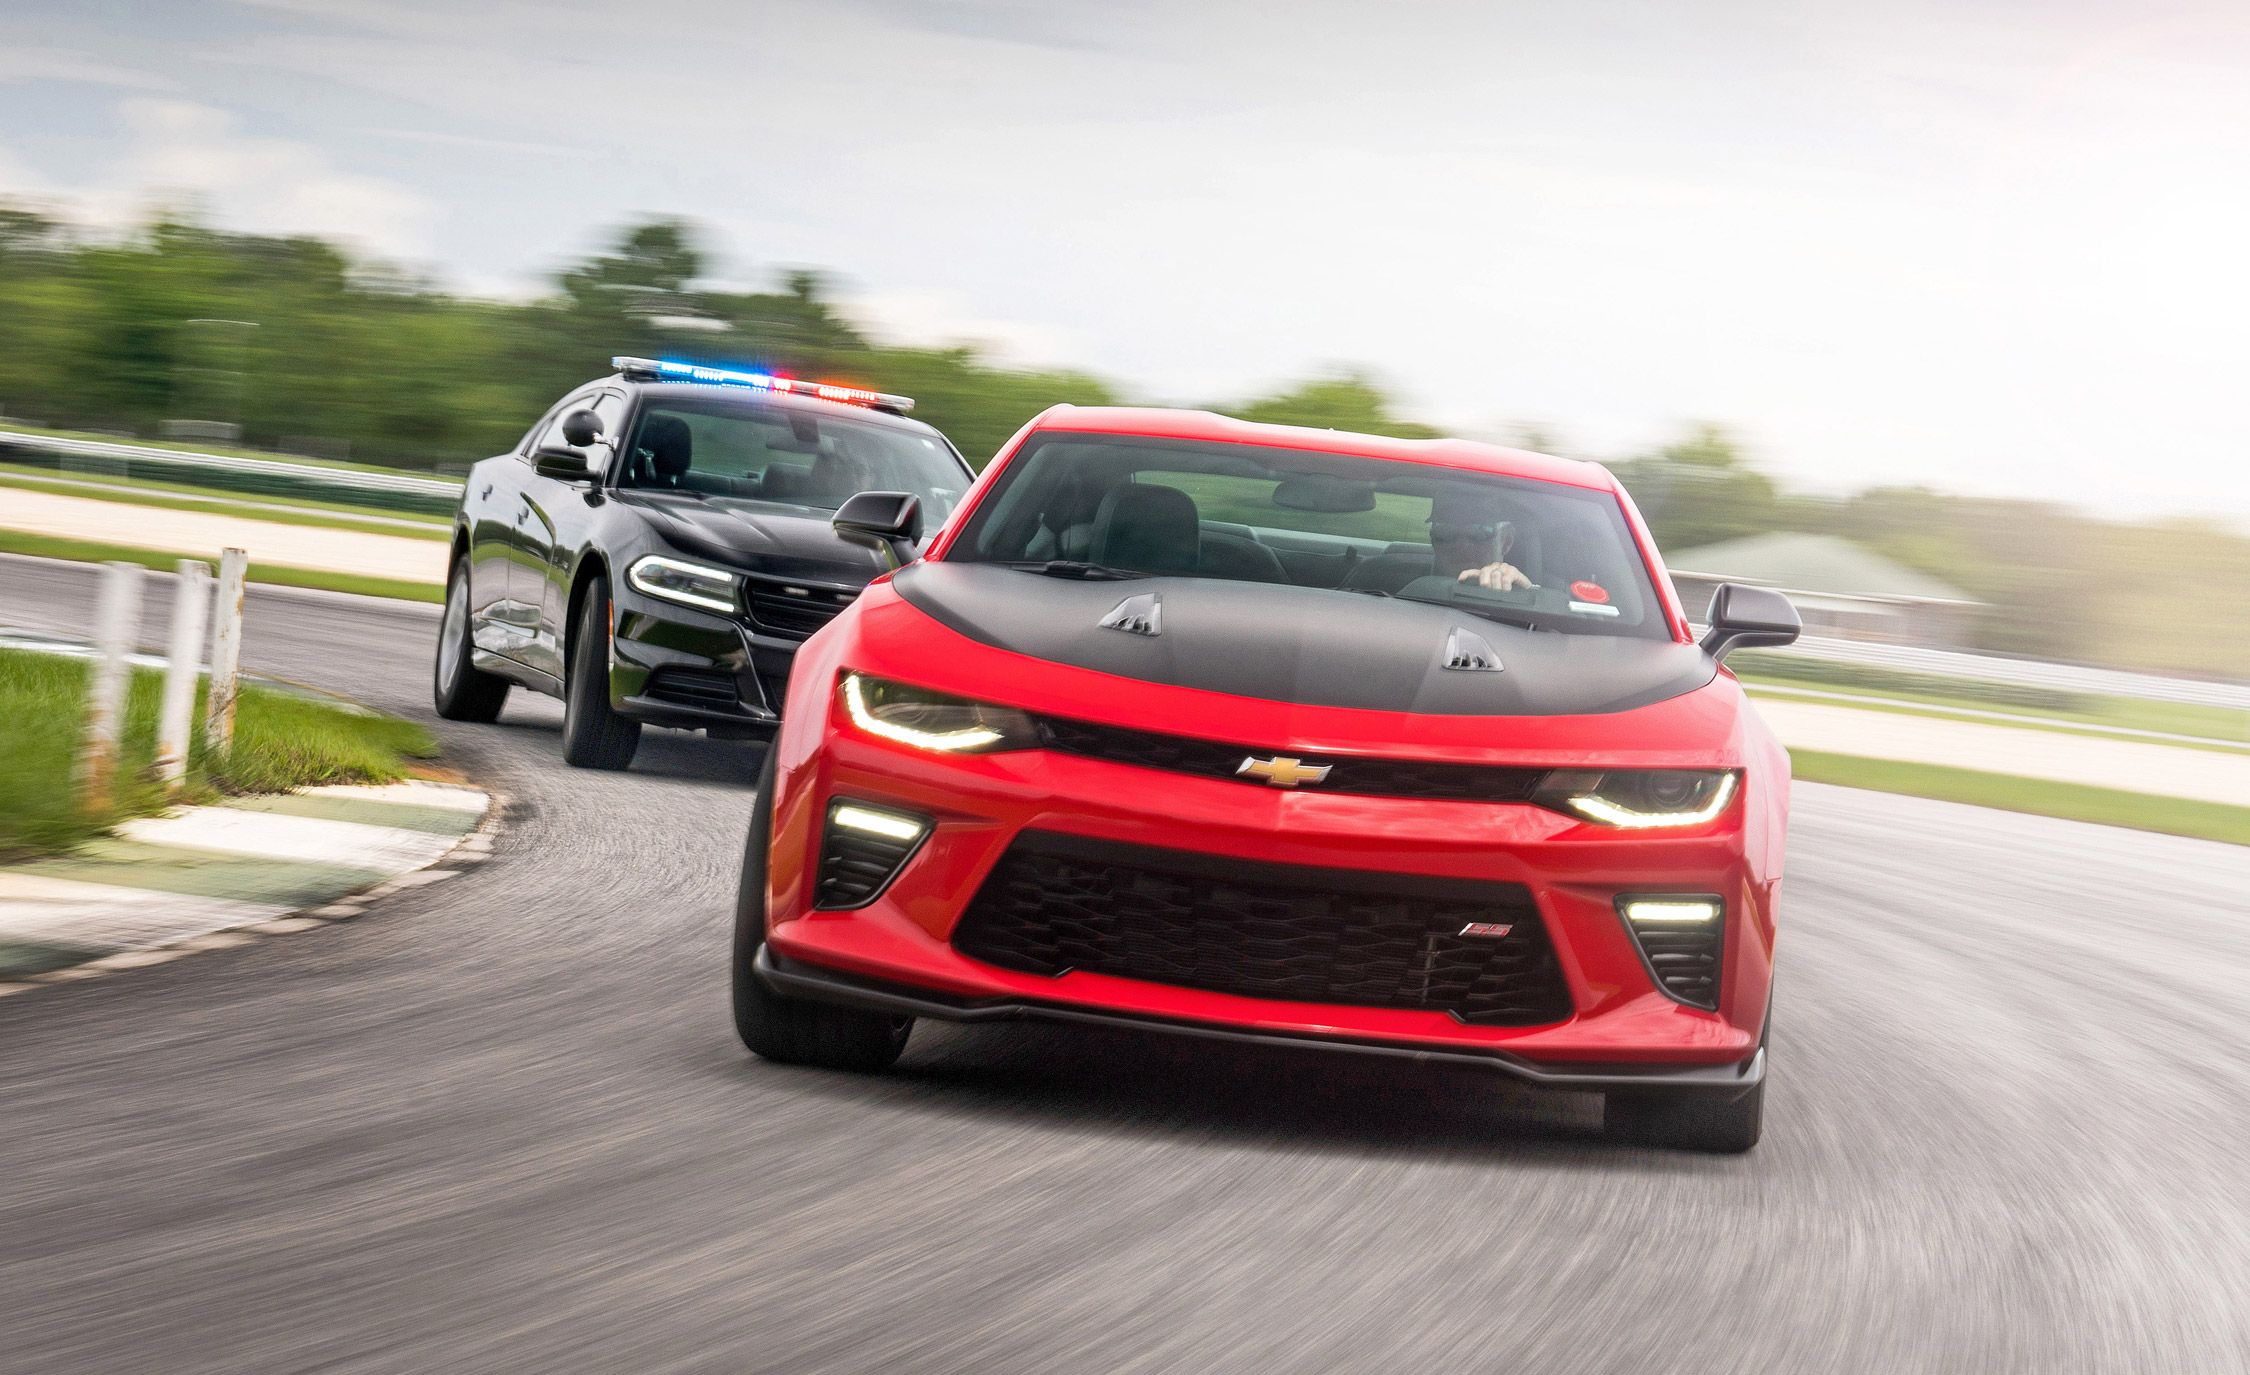 Tested: How Fast Your Car Needs to Be to Outrun a Cop